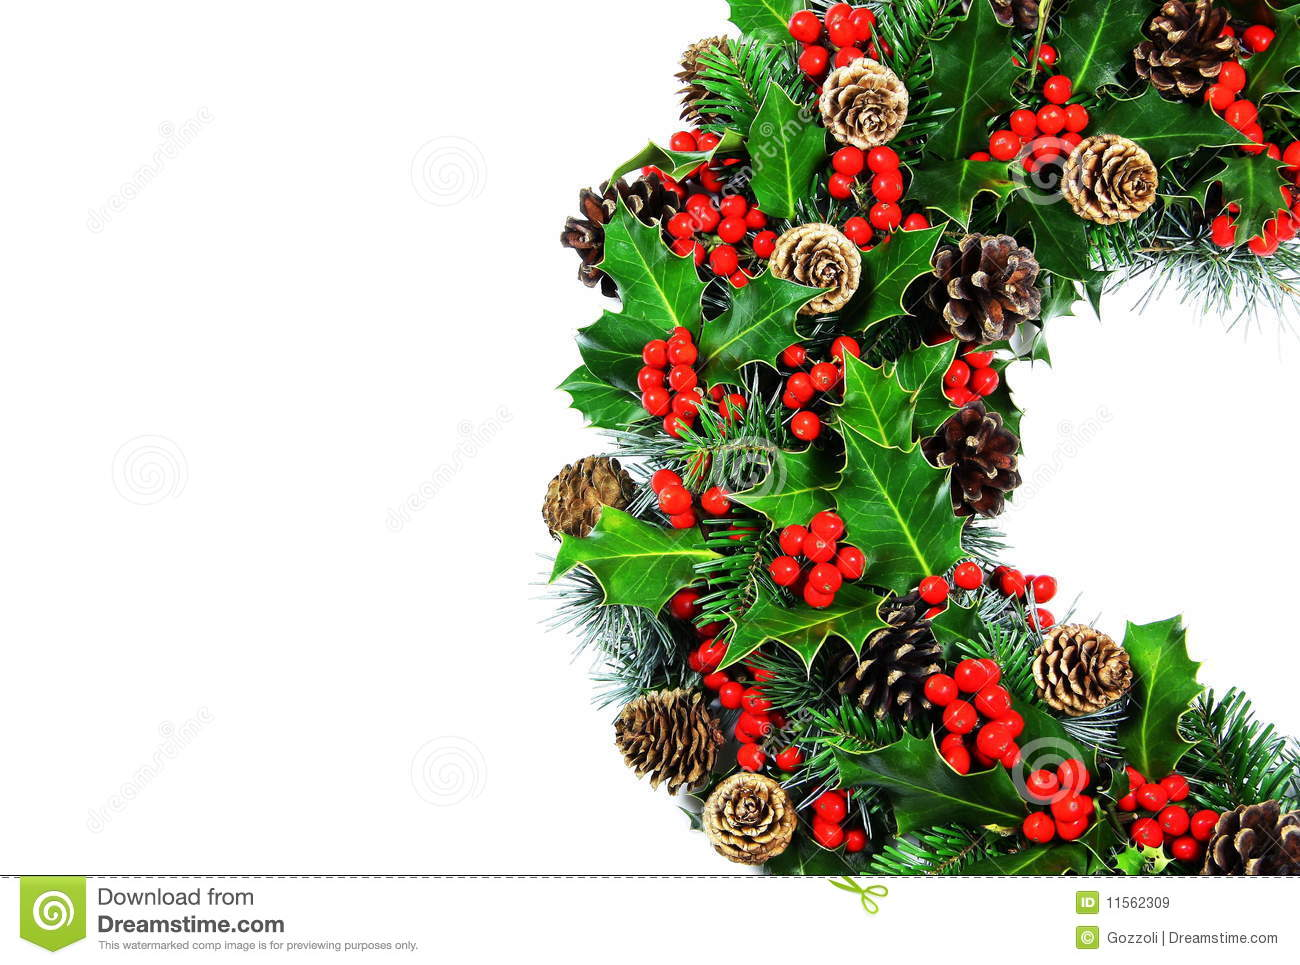 Why is holly a traditional christmas decoration - Royalty Free Stock Photo Download Traditional Christmas Holly